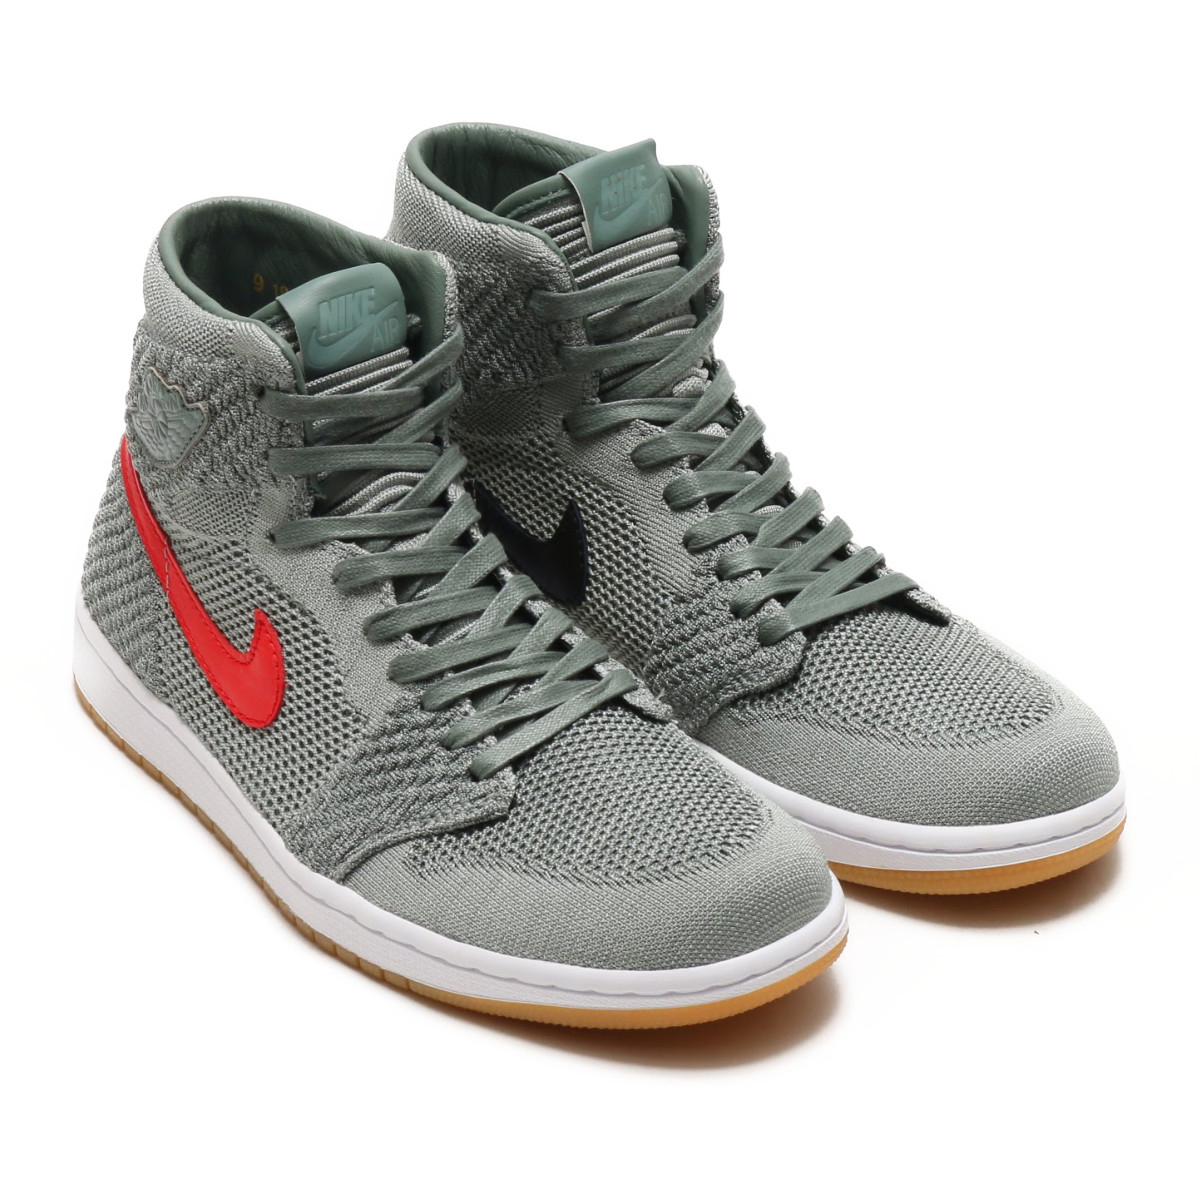 8af5f9b74af3 ... promo code nike air jordan 1 retro hi flyknit nike air jordan 1  nostalgic high fried